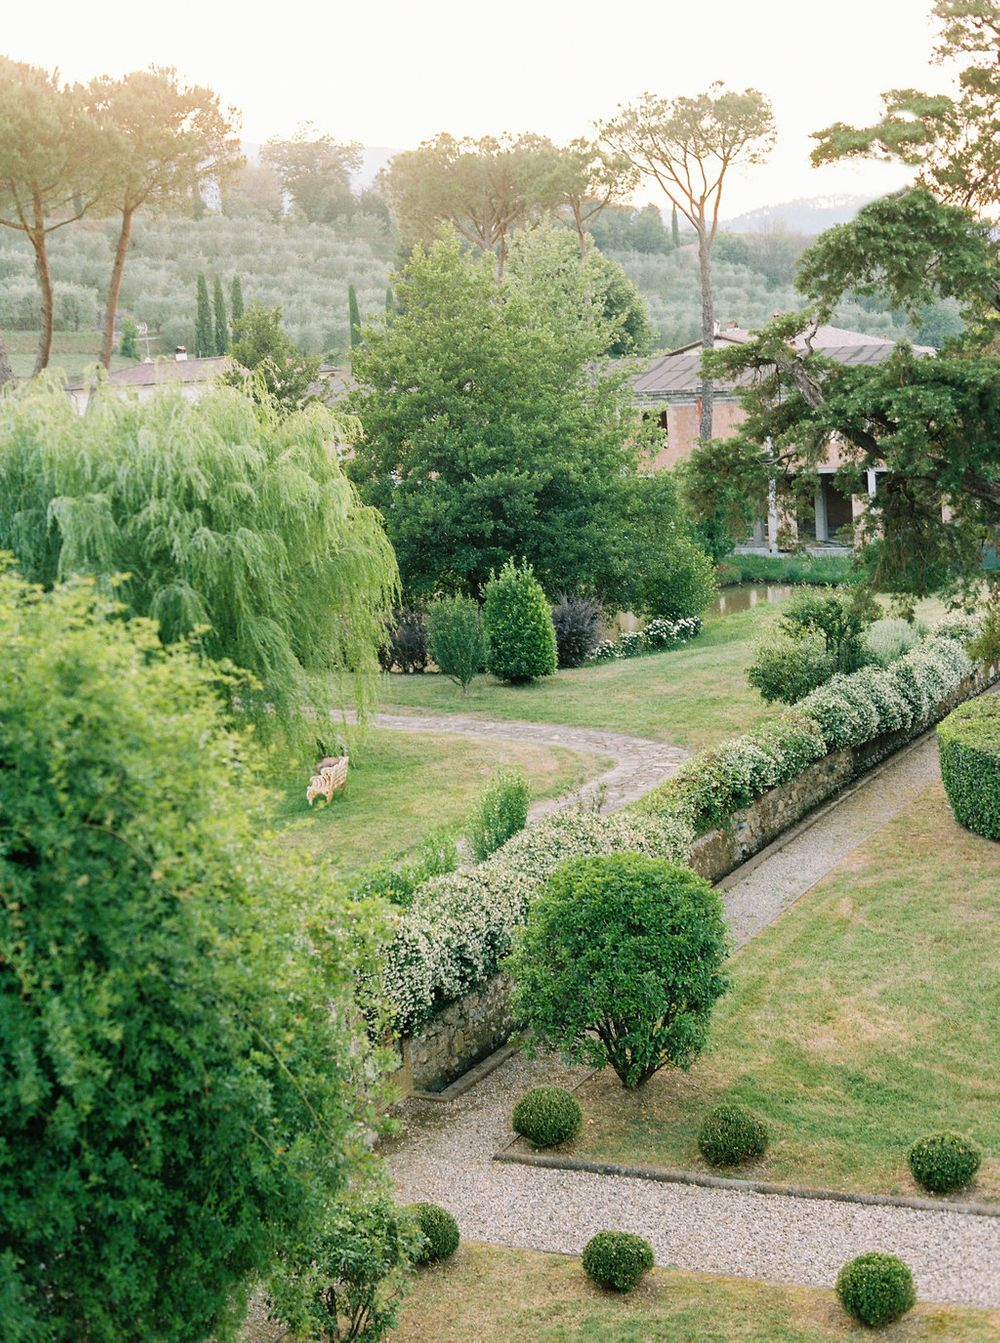 gardens around the villa